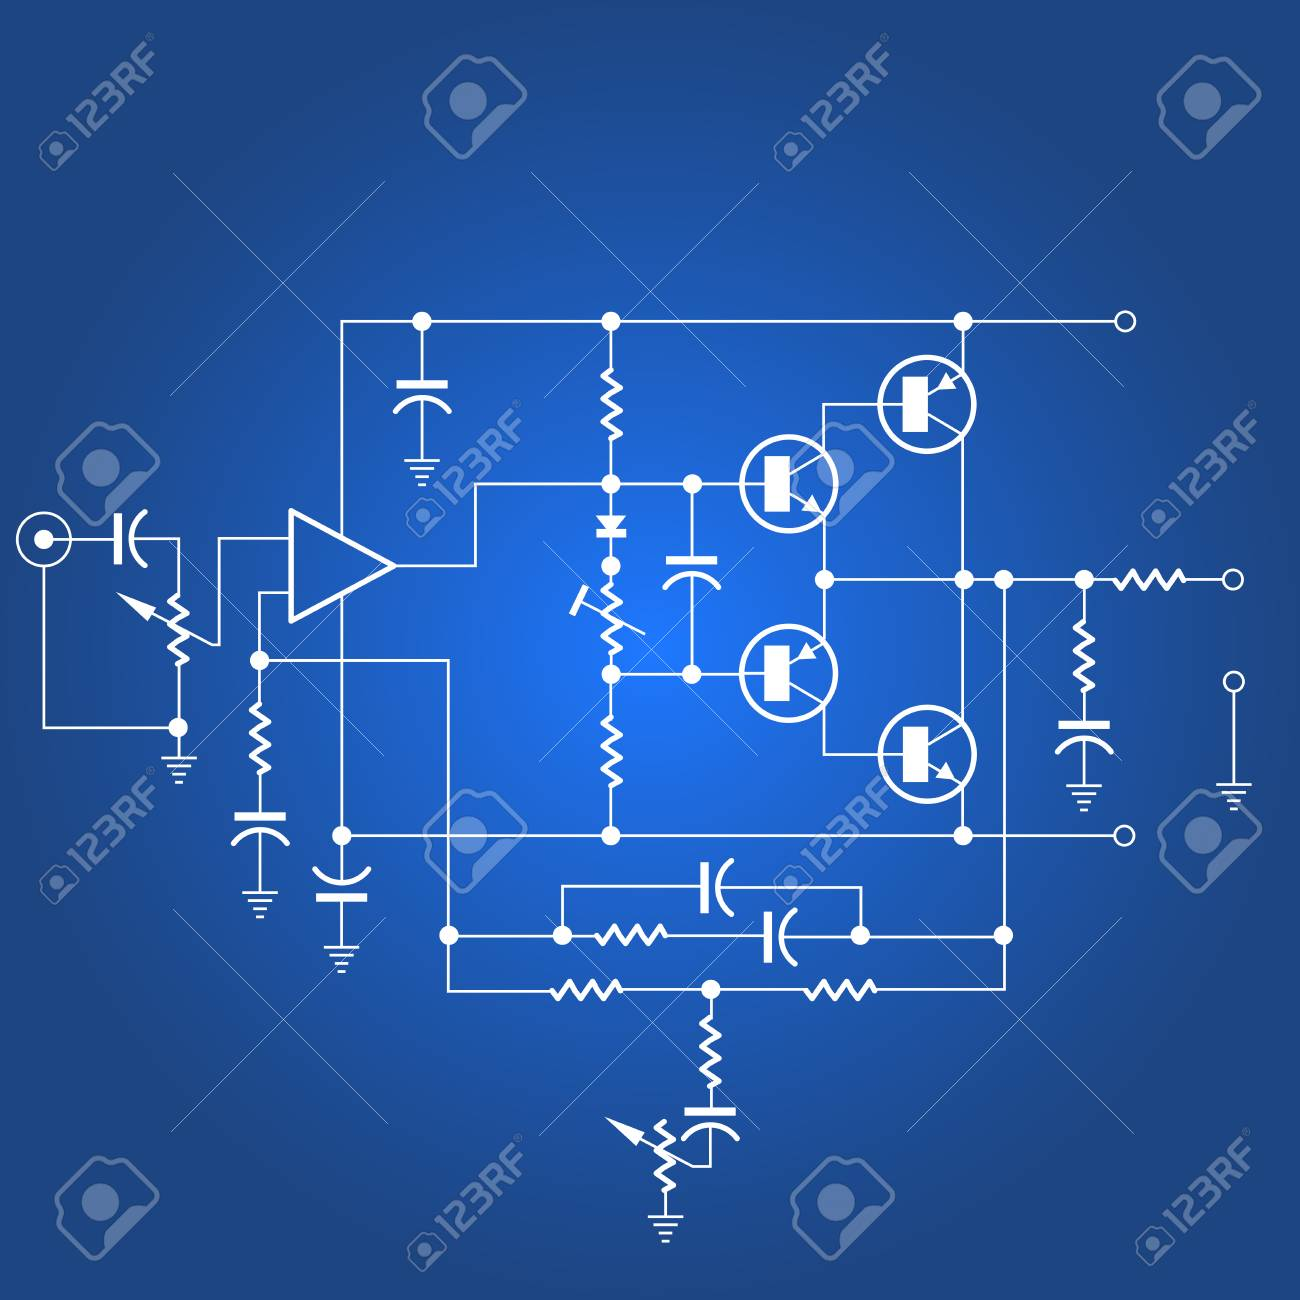 Electric circuit or electrical network on blue background - 114736712